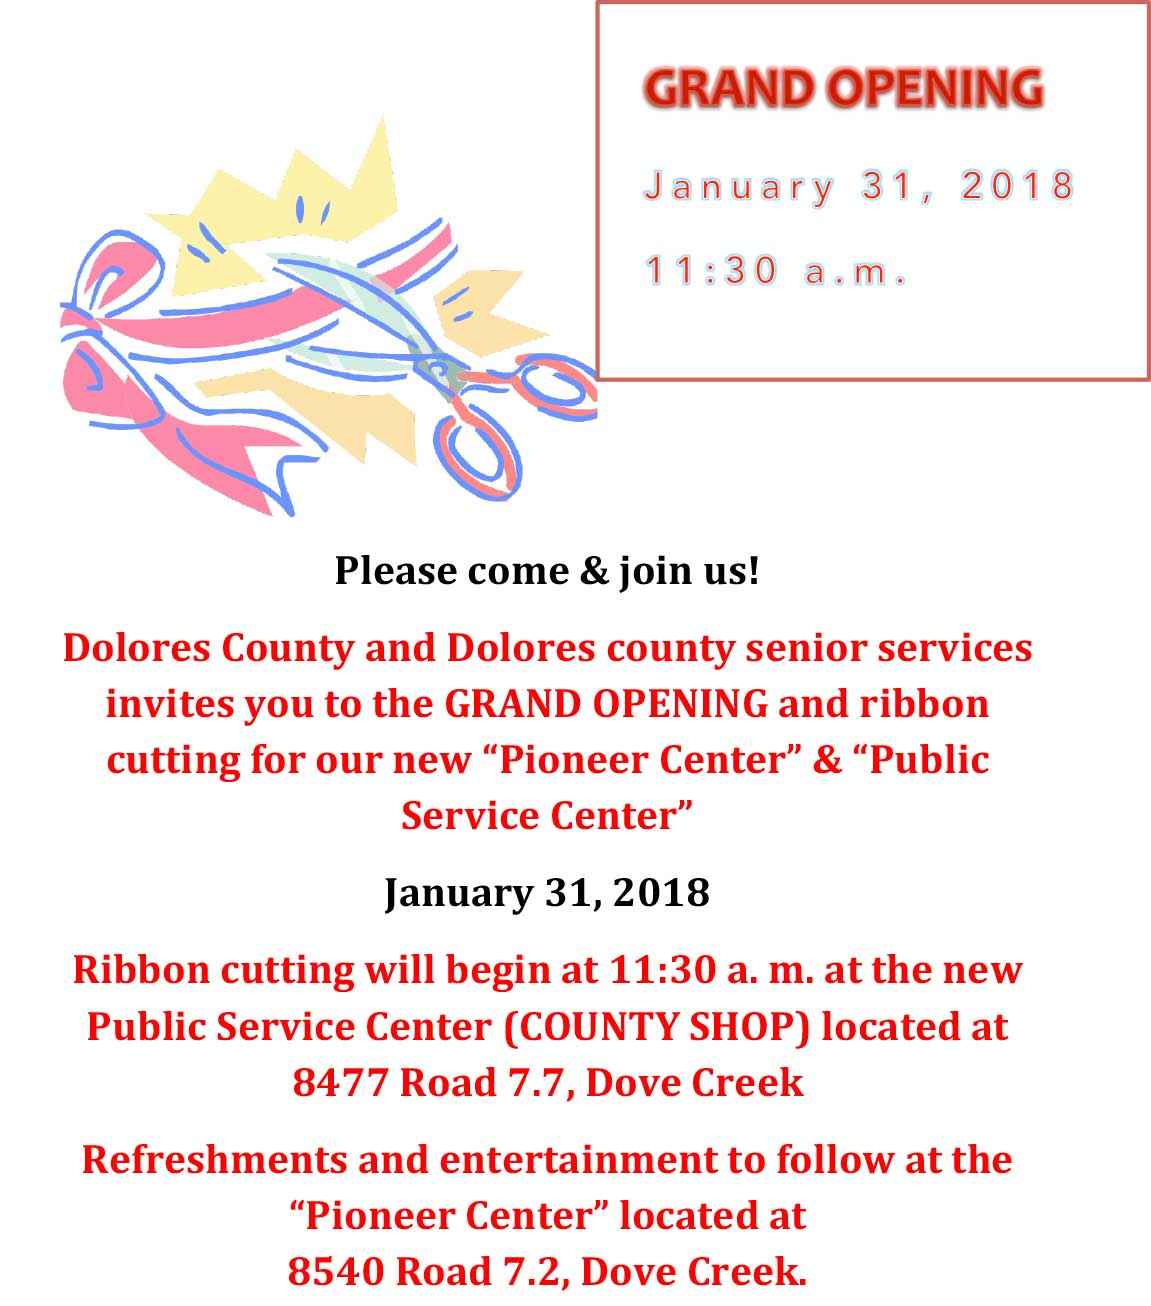 DELORES-GRAND-OPENING-FLYER